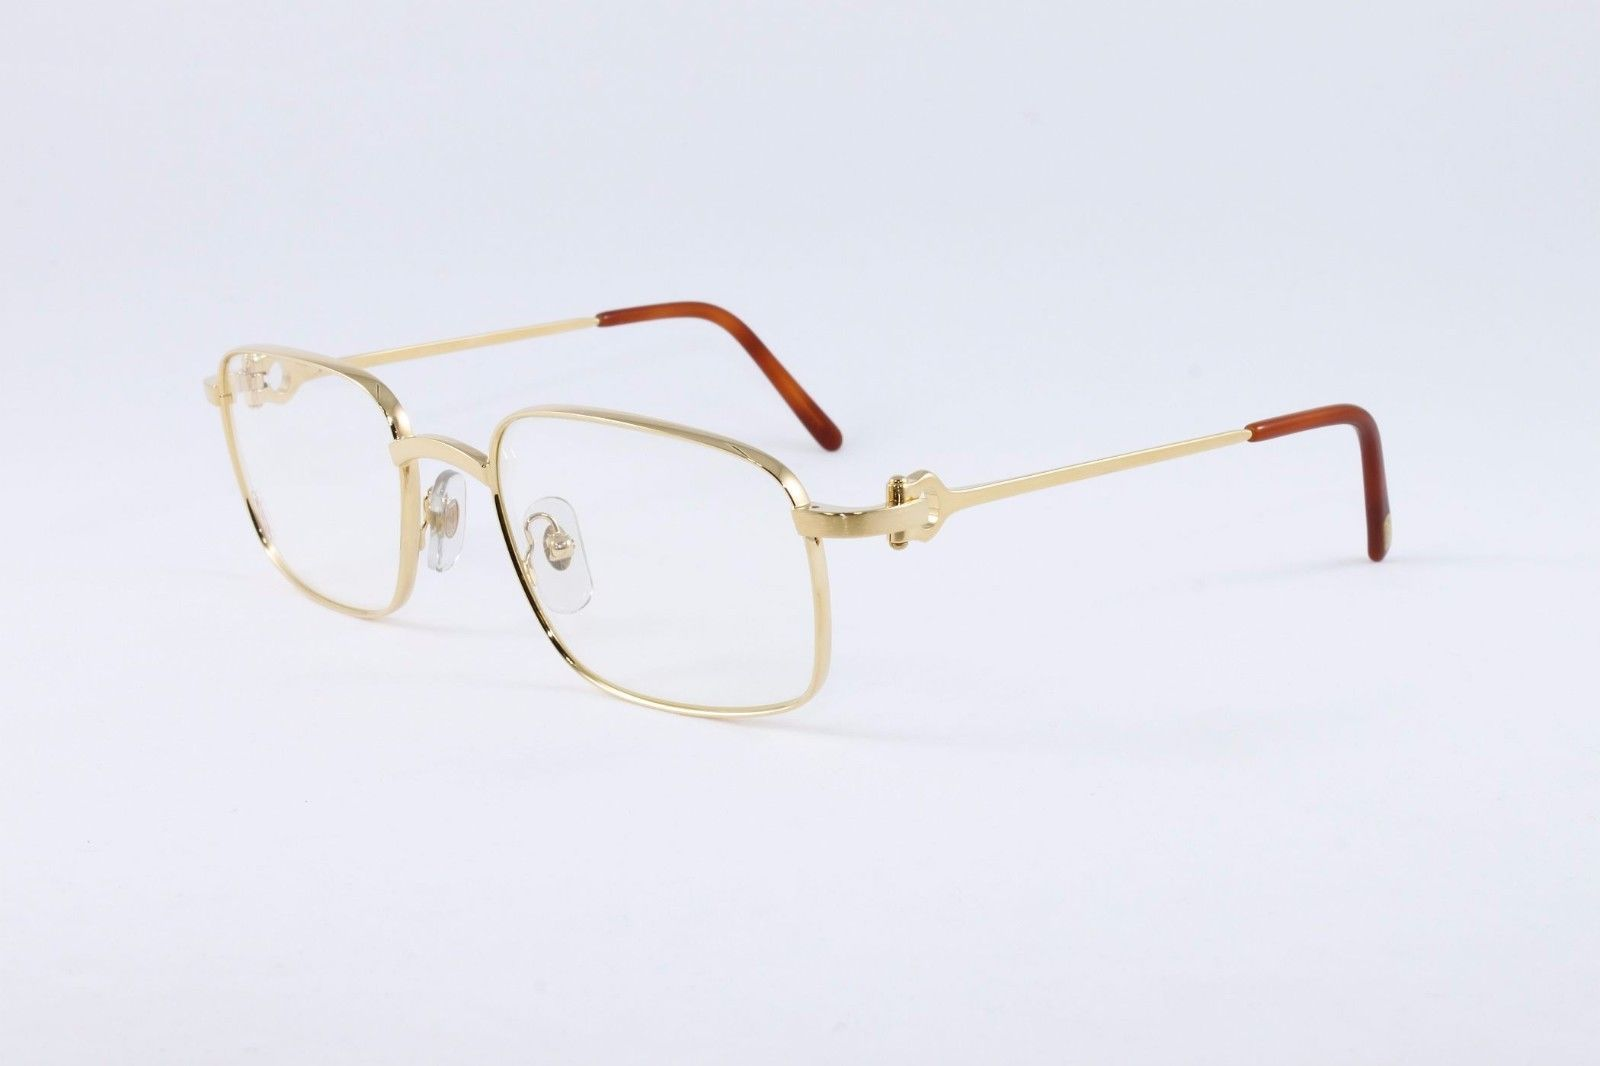 2ce3a310609a Cartier Square Brushed Pale Gold Eyeglasses T8100454 Frames Authentic  France New 761675939698